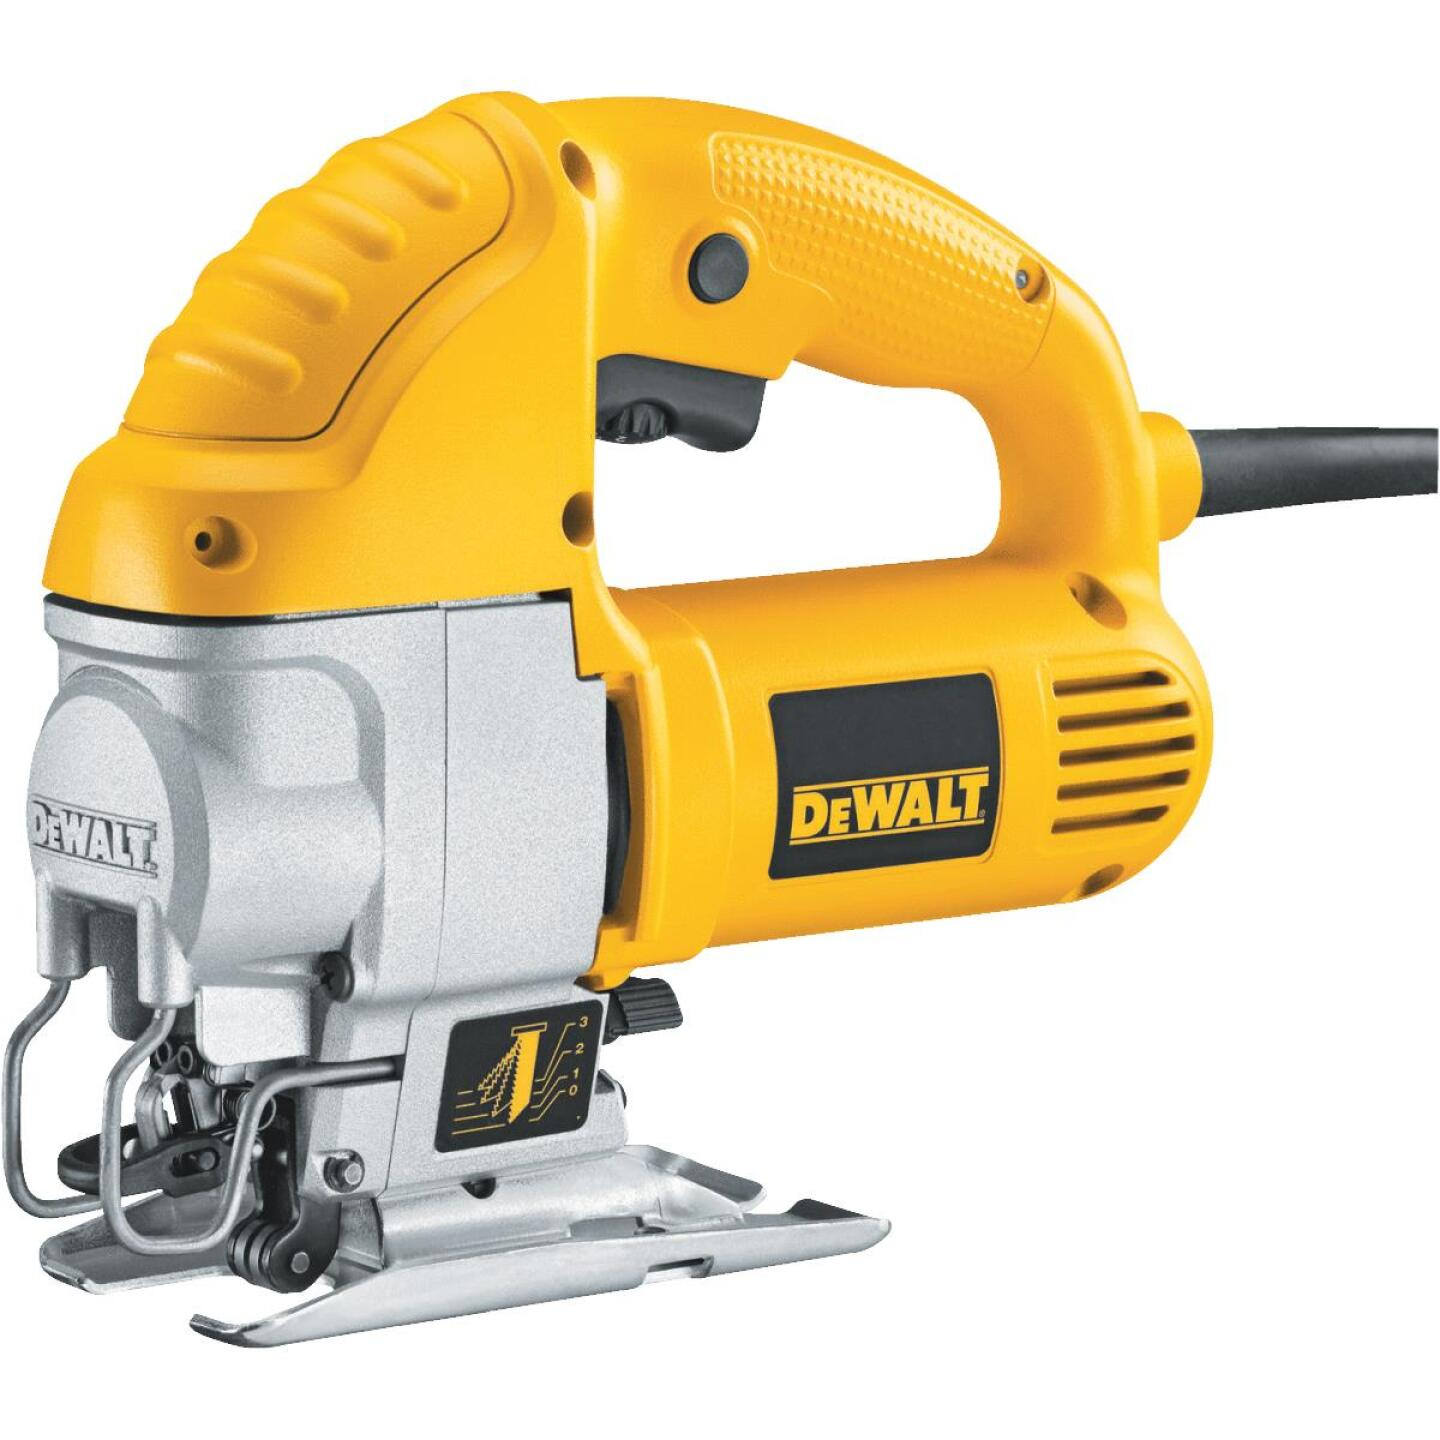 DeWalt 5.5A 4-Position 0 to 3100 SPM Jig Saw Image 1